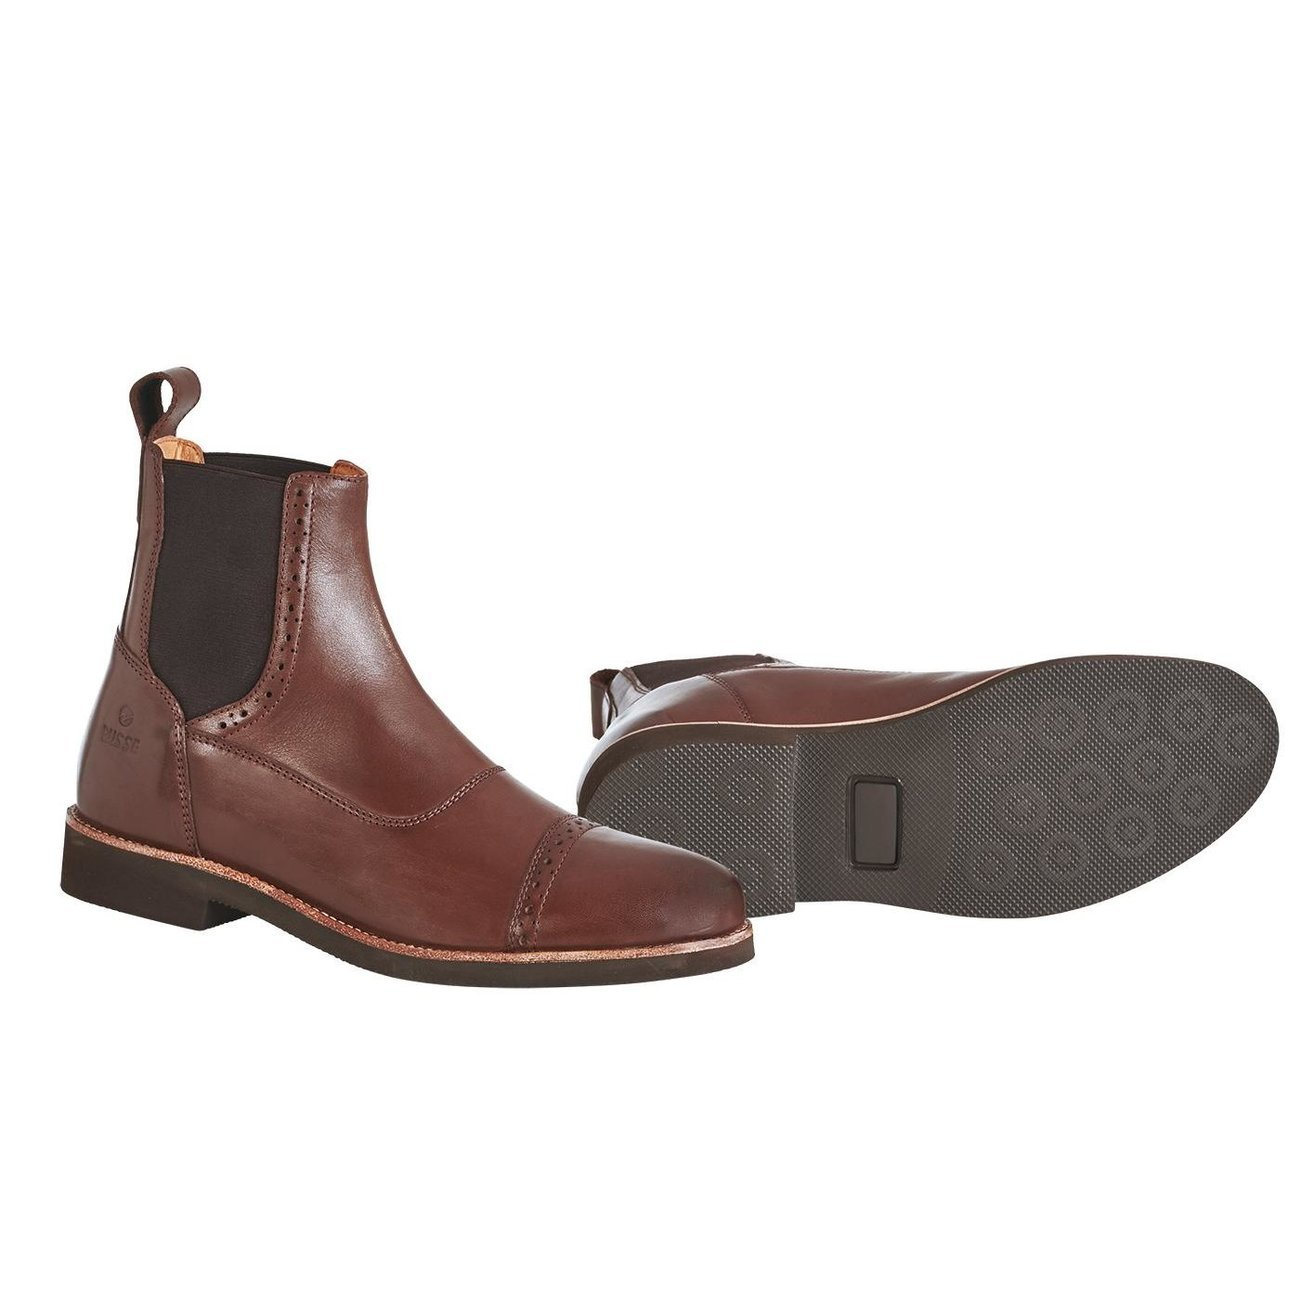 BUSSE Jodhpur Stiefelette Daily Preview Image